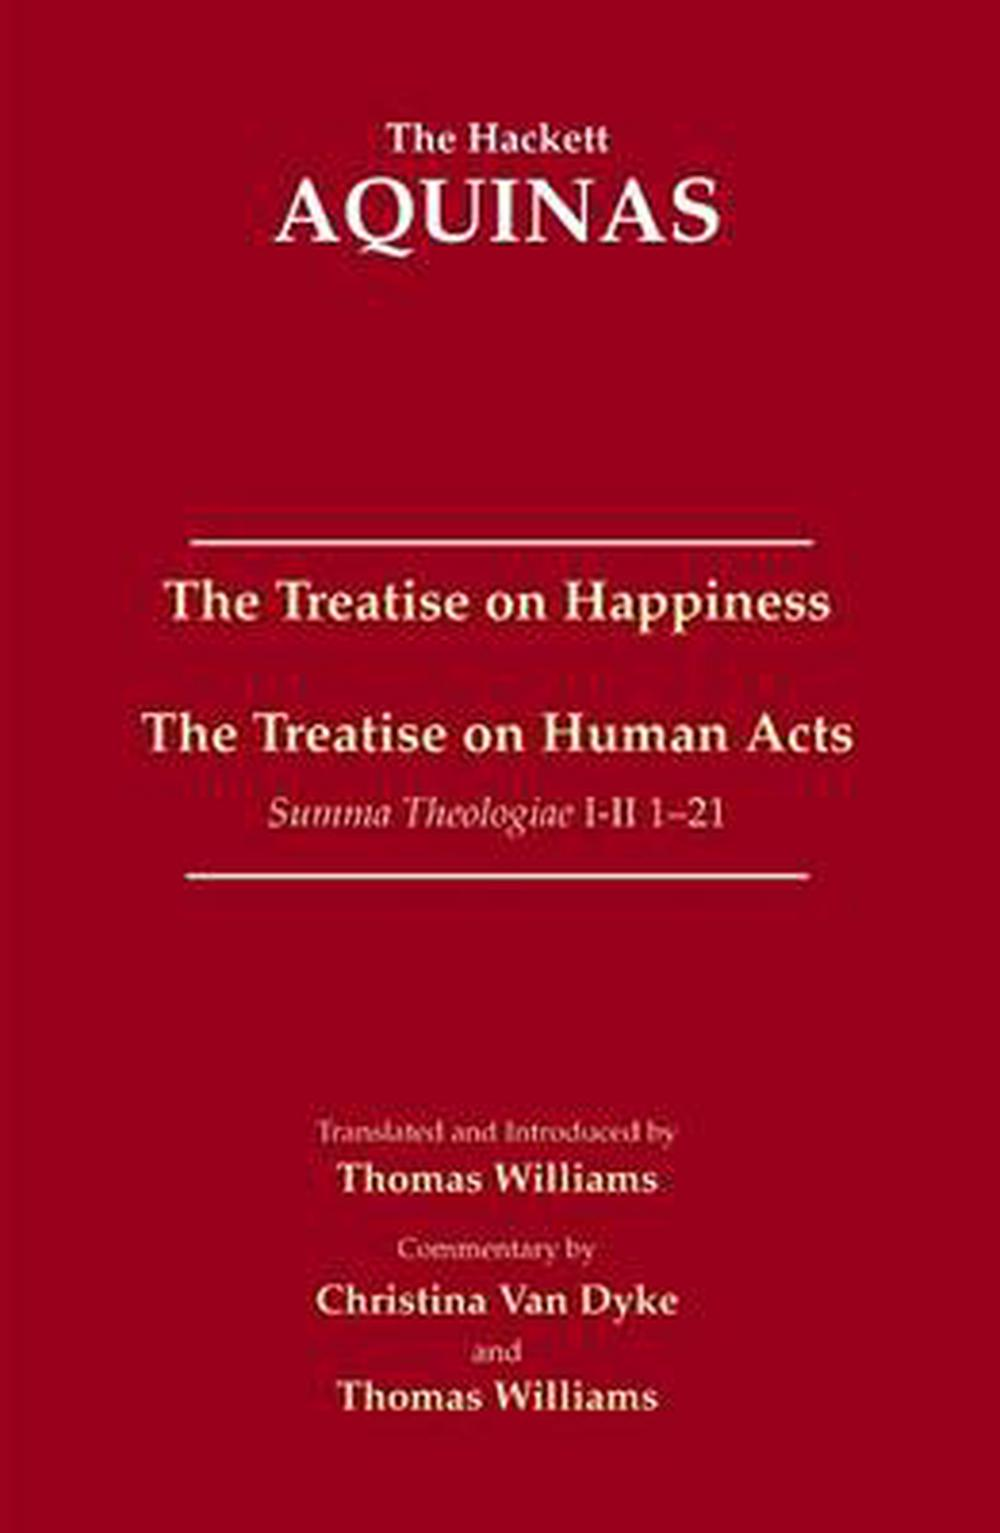 The Treatise on Happiness ? The Treatise on Human Acts